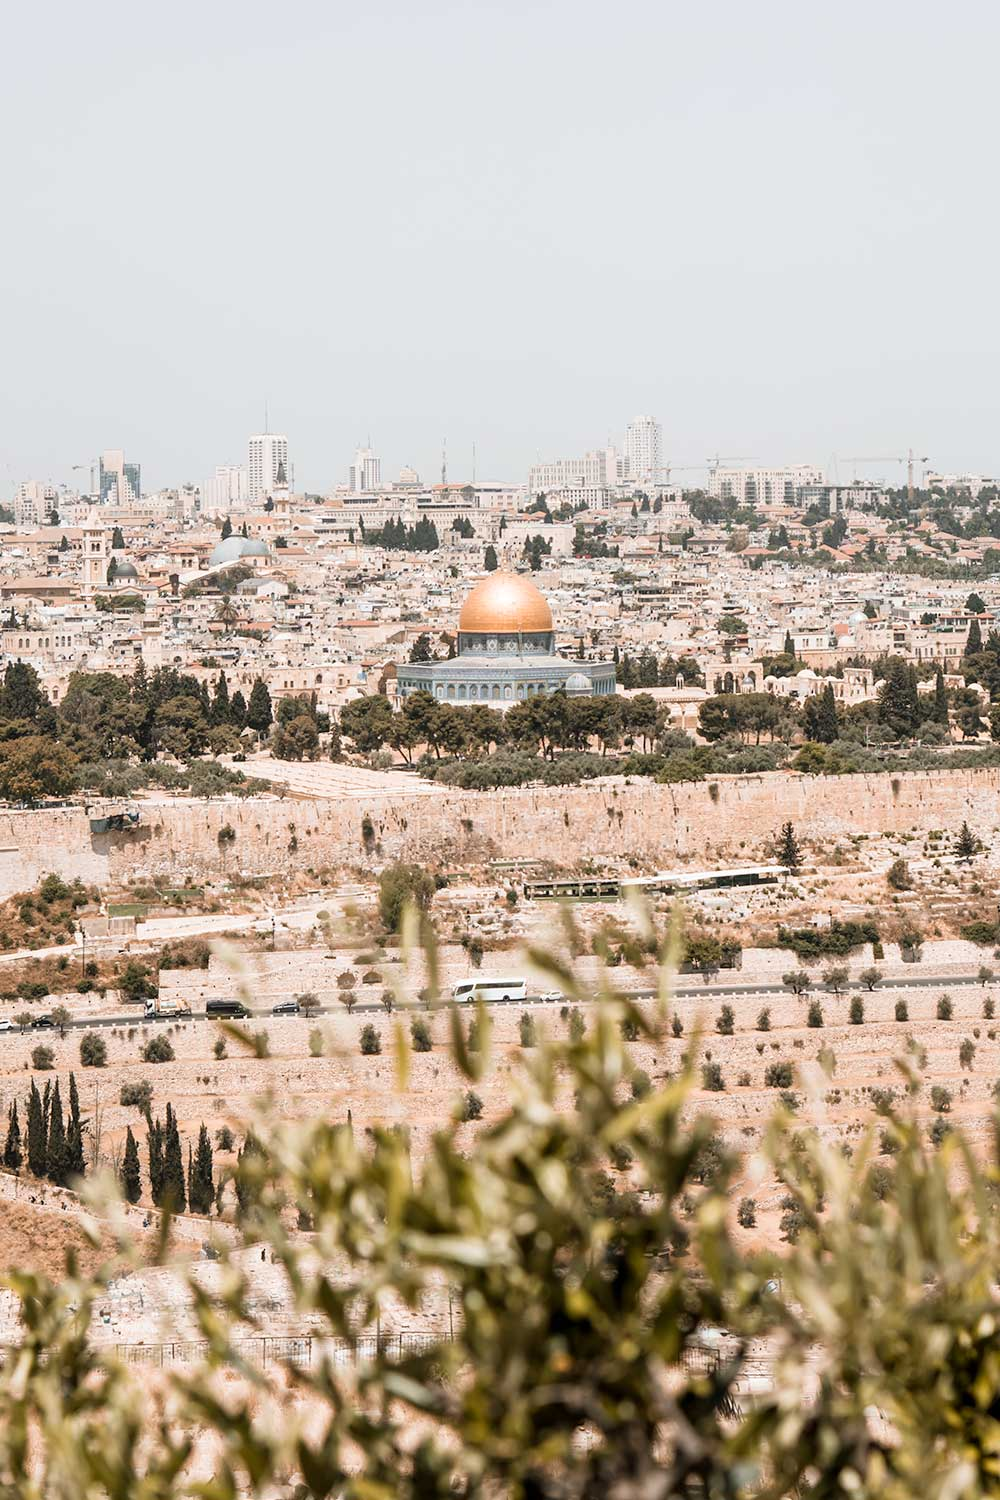 The beautiful Al Aqsa Mosque as seen from the Mount of Olives on our 2 days in Jerusalem